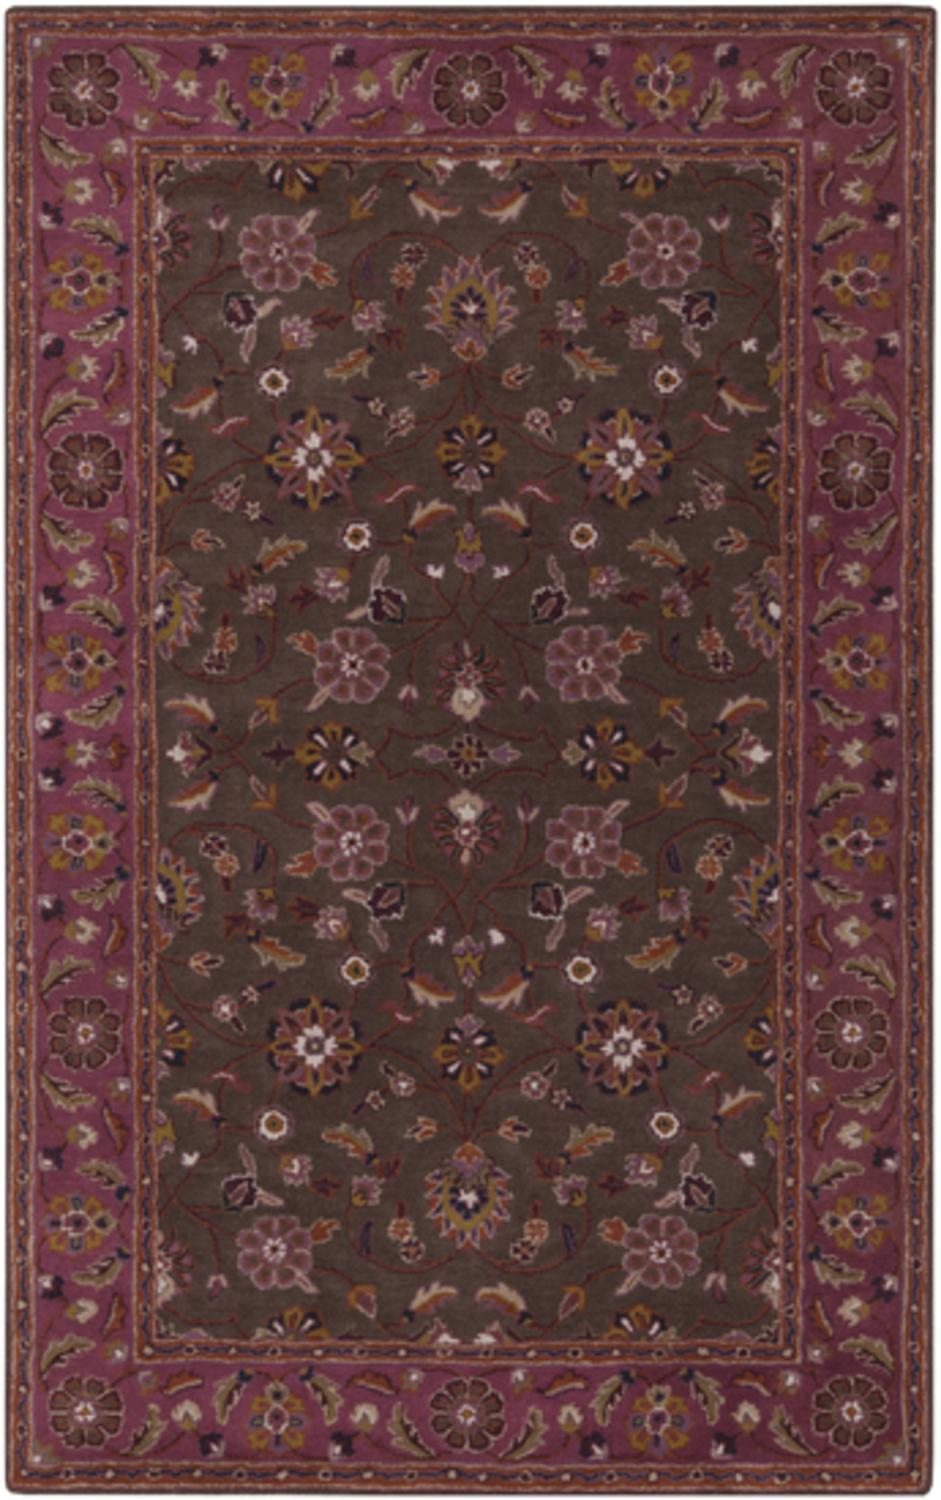 10' x 14' Protipo Floral Chocolate Brown and Violet Quartz Hand Tufted Wool Area Throw Rug by Diva At Home